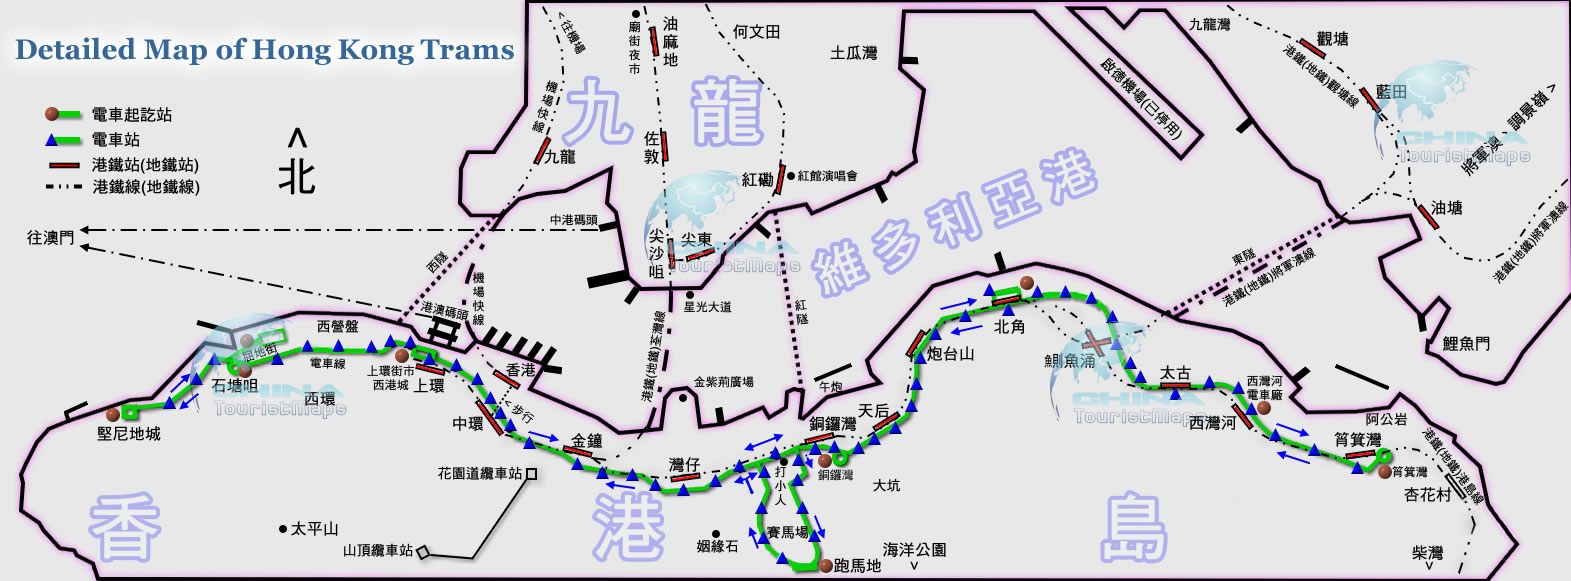 map-of-hong-kong-tramways.jpg